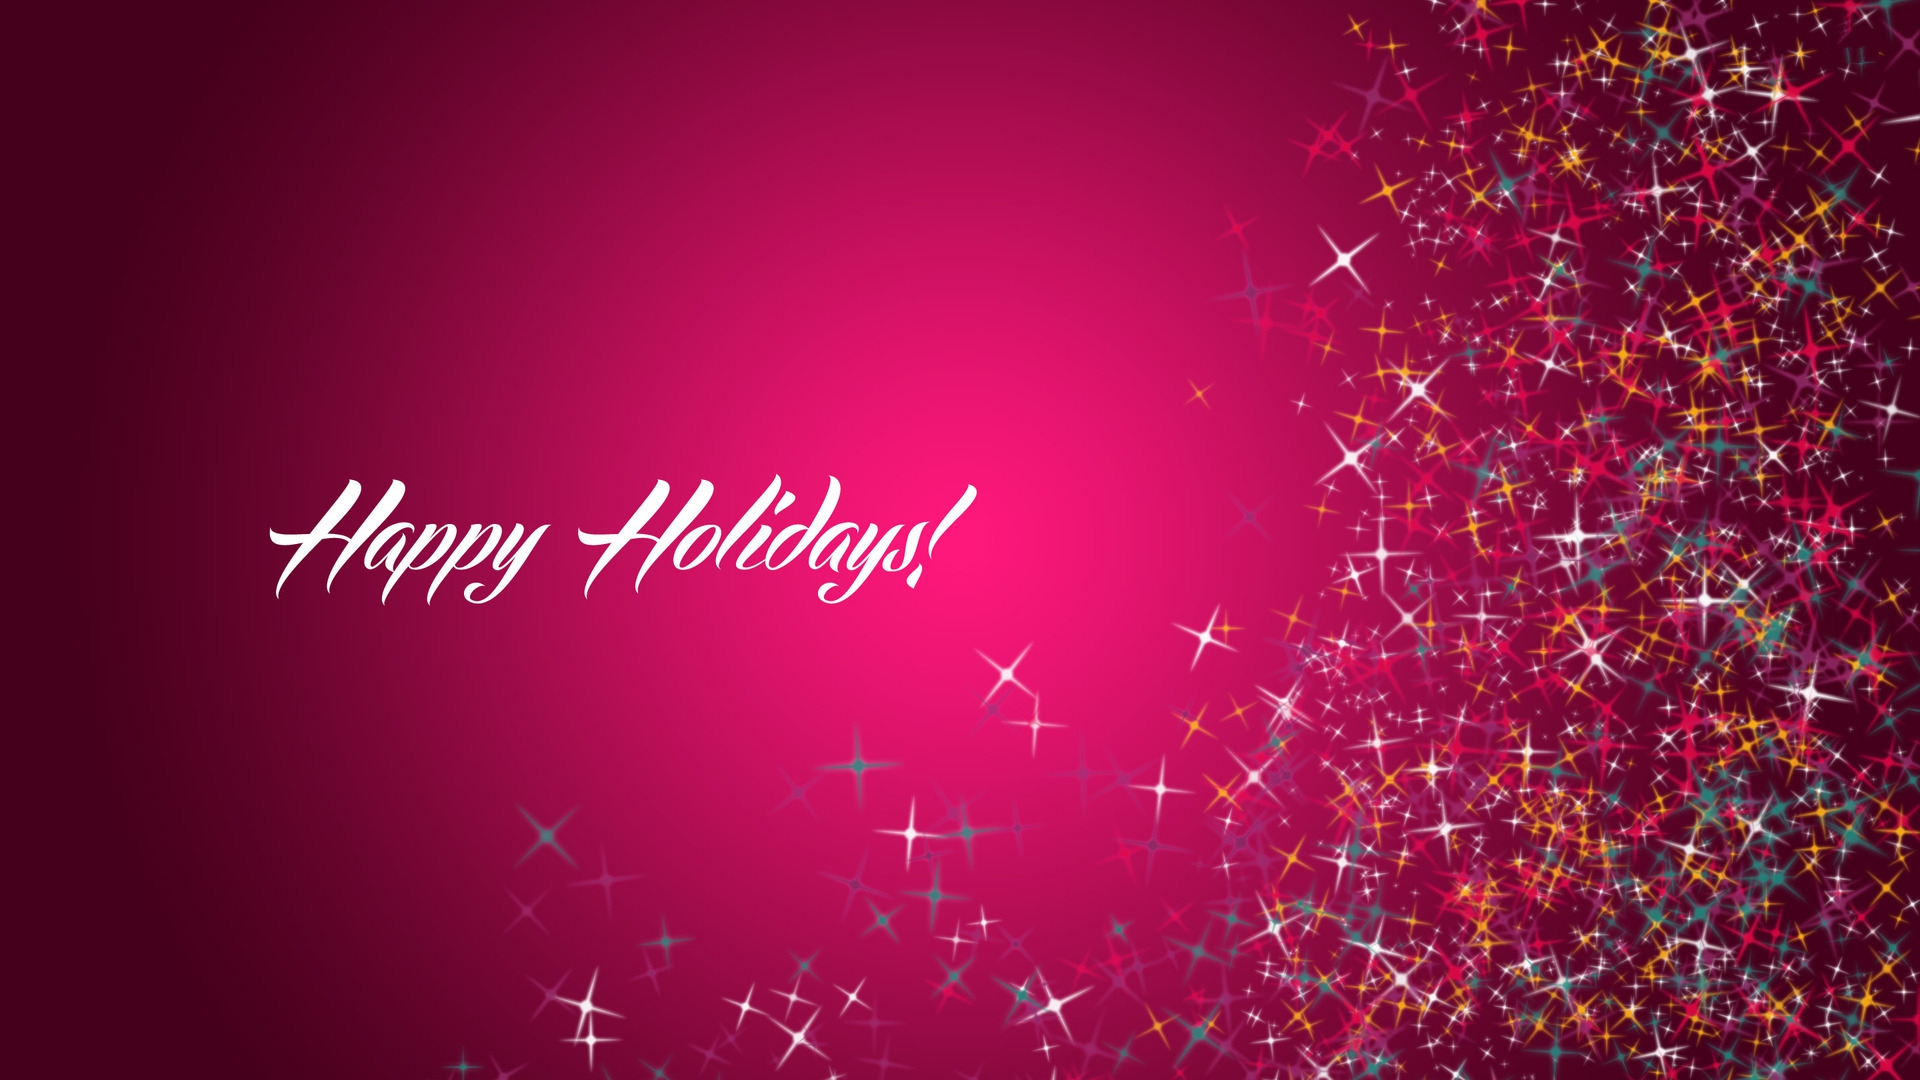 Download Holiday HD Wallpapers Free | PixelsTalk Net